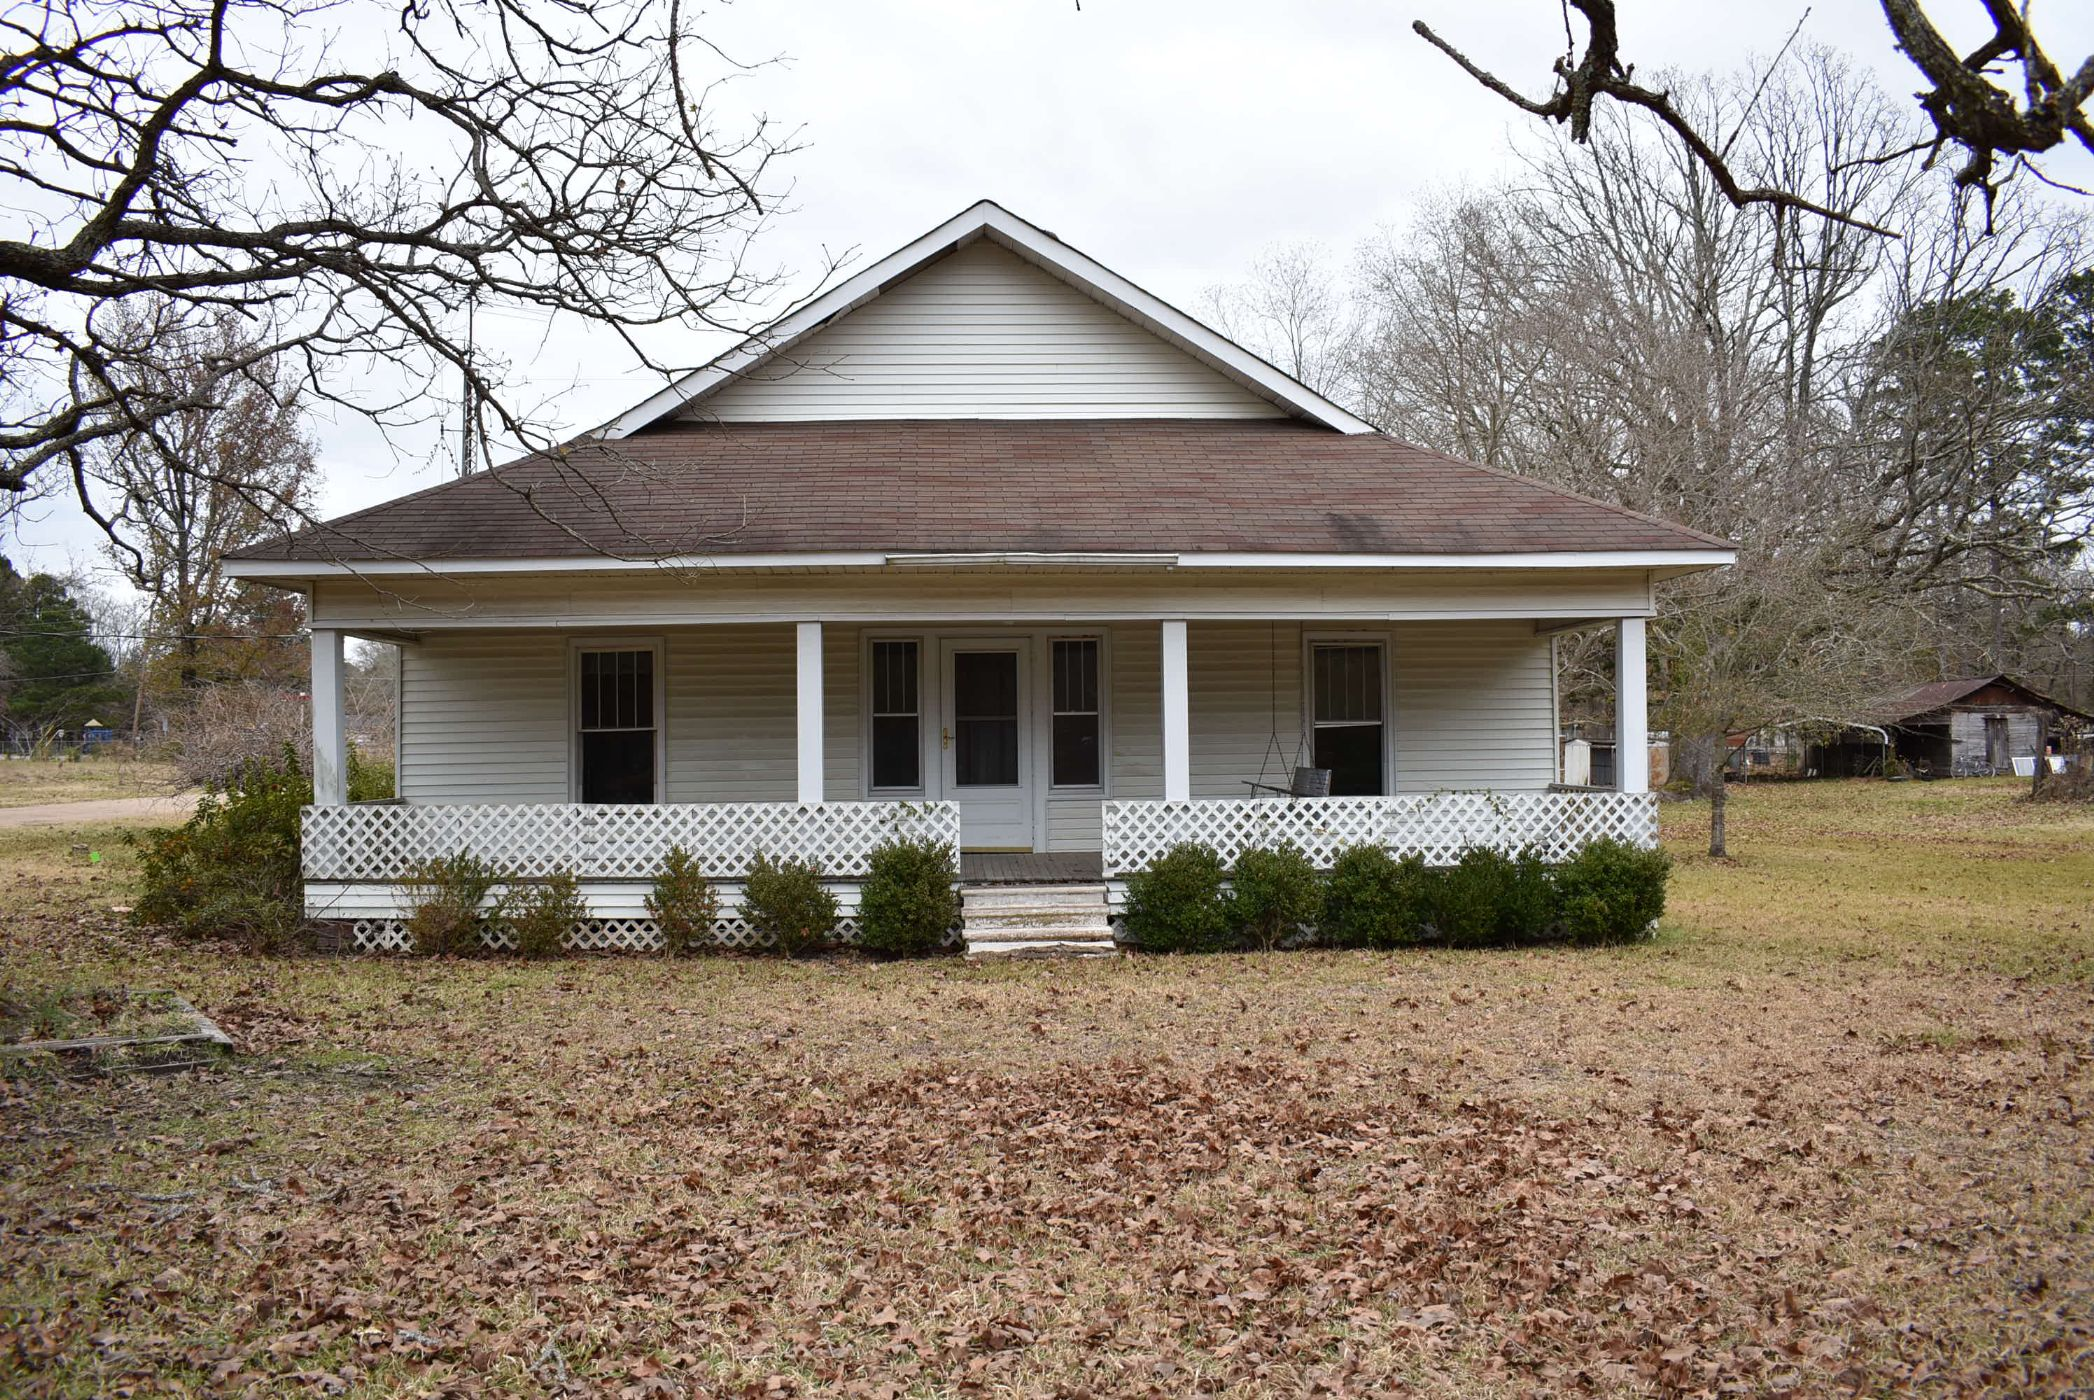 House & Lots in Emerson, Arkansas - 103 Teddy Street, Emerson AR